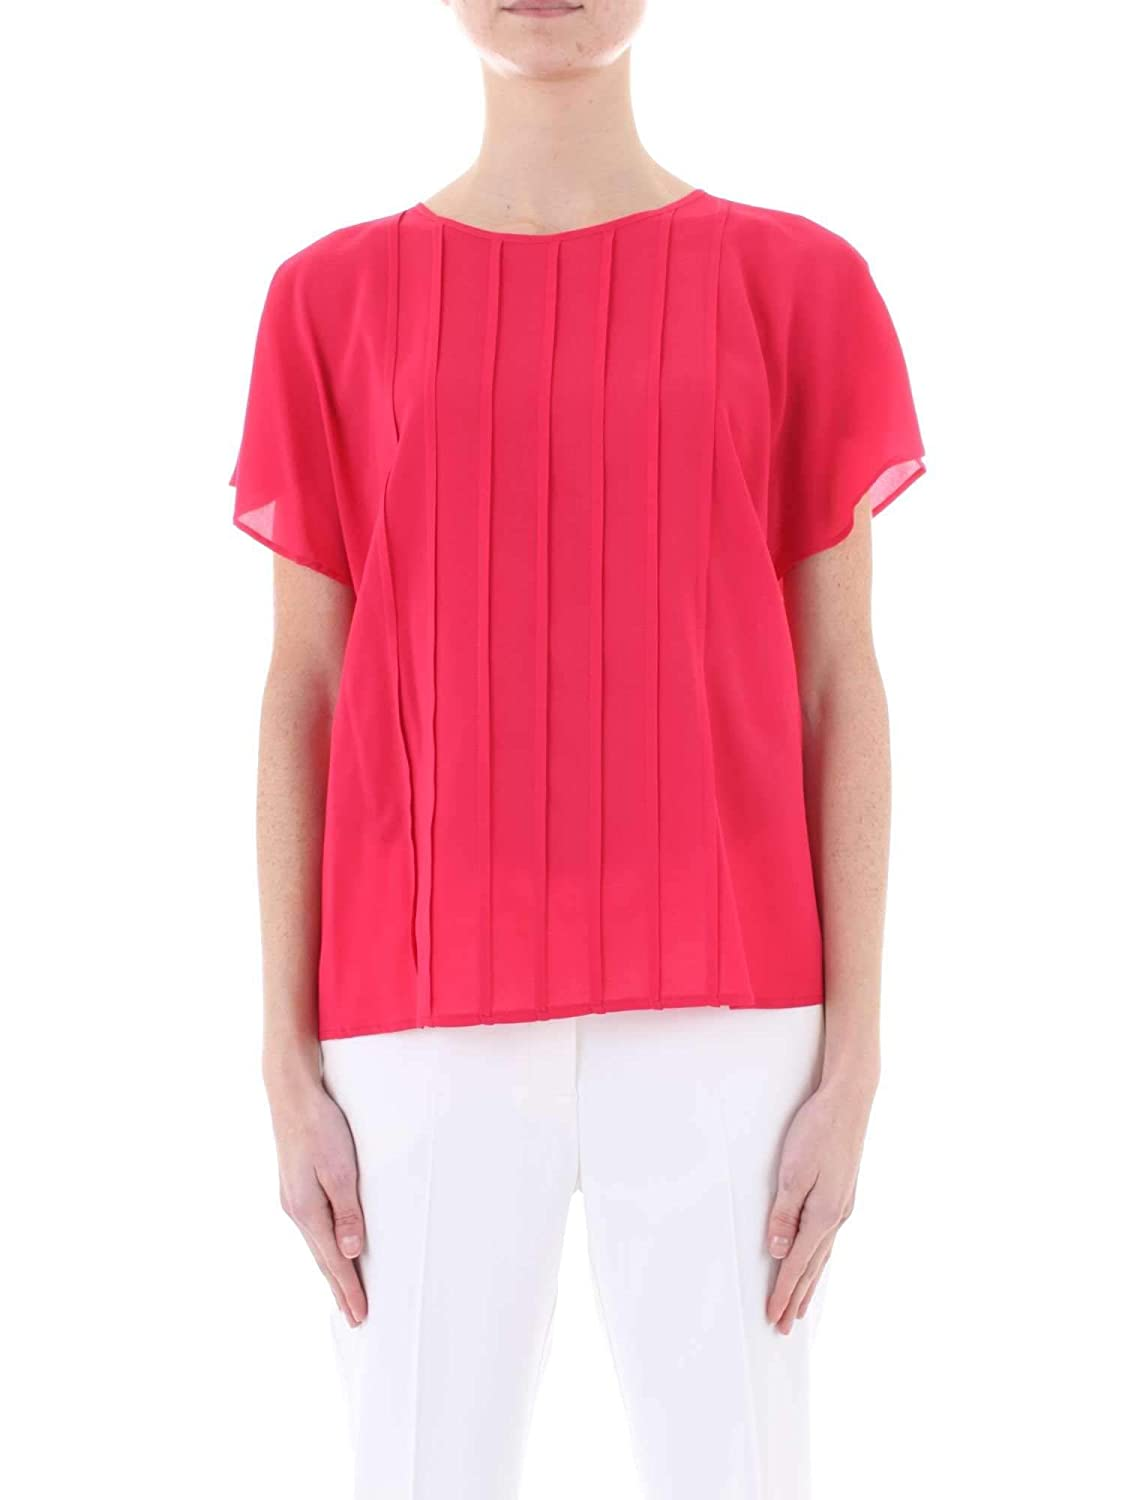 Manila Grace Women's P9SC695VUMD665 Red Viscose Blouse